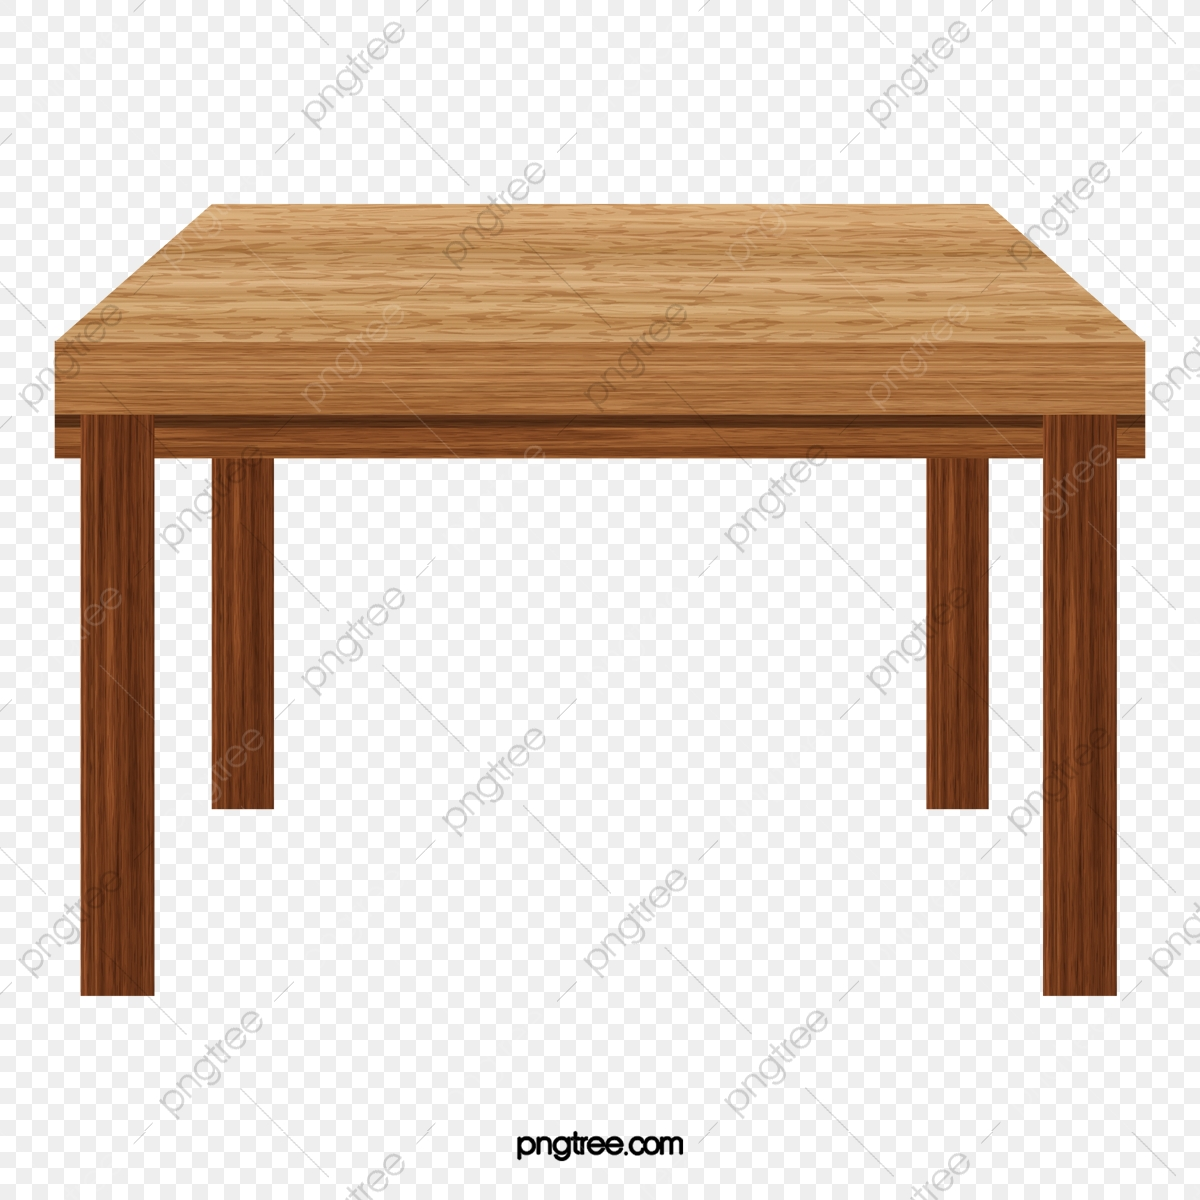 Vector Yellow Rectangular Table Wooden. Vector Table. Yellow Table. Rectangular Table PNG and Vector with Transparent Background for Free Download